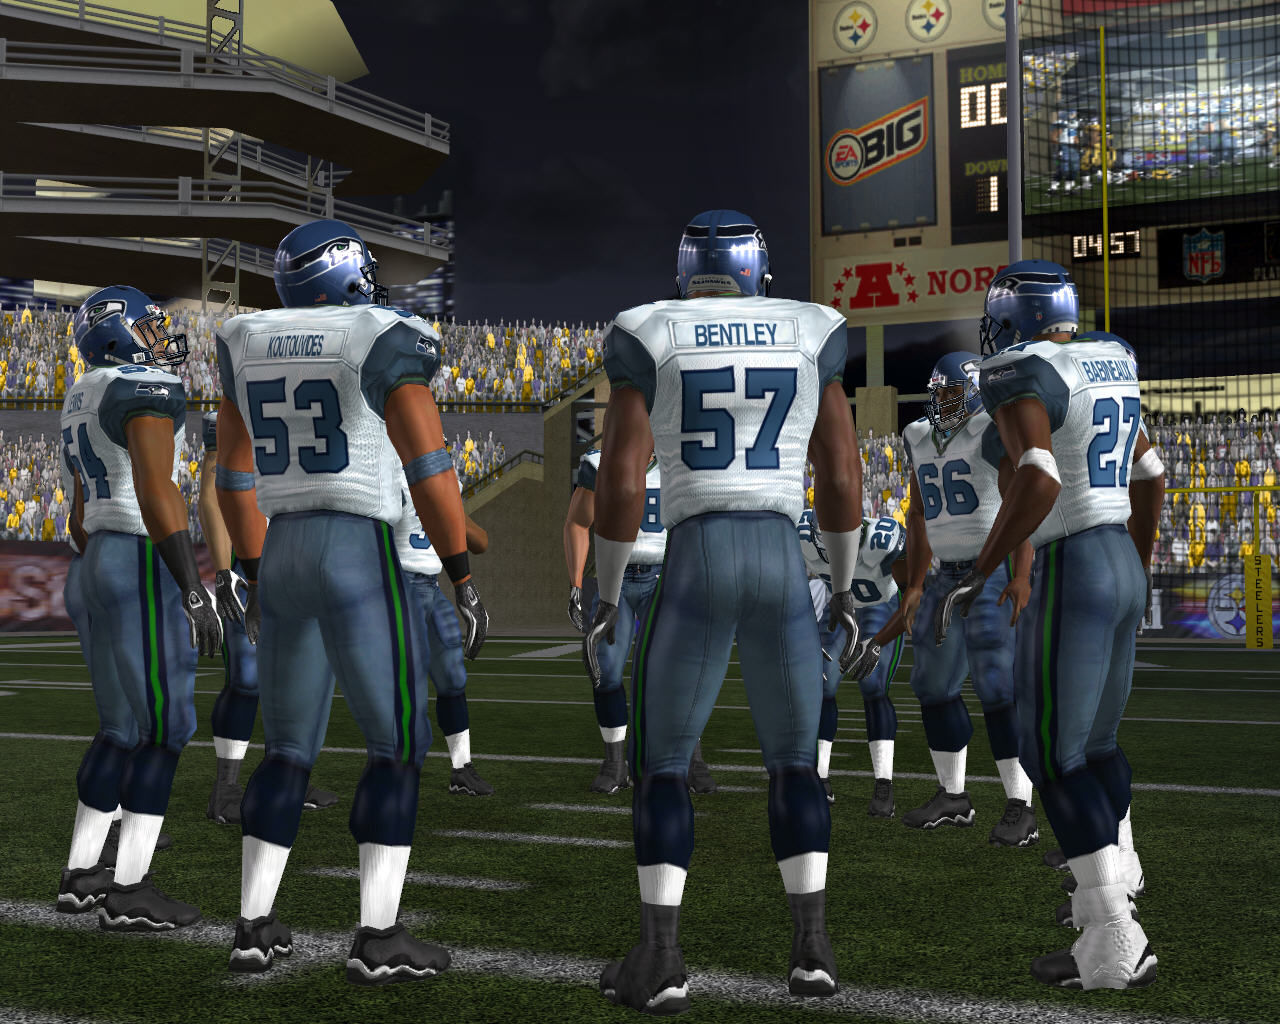 Madden NFL 07 Windows Players in a circle